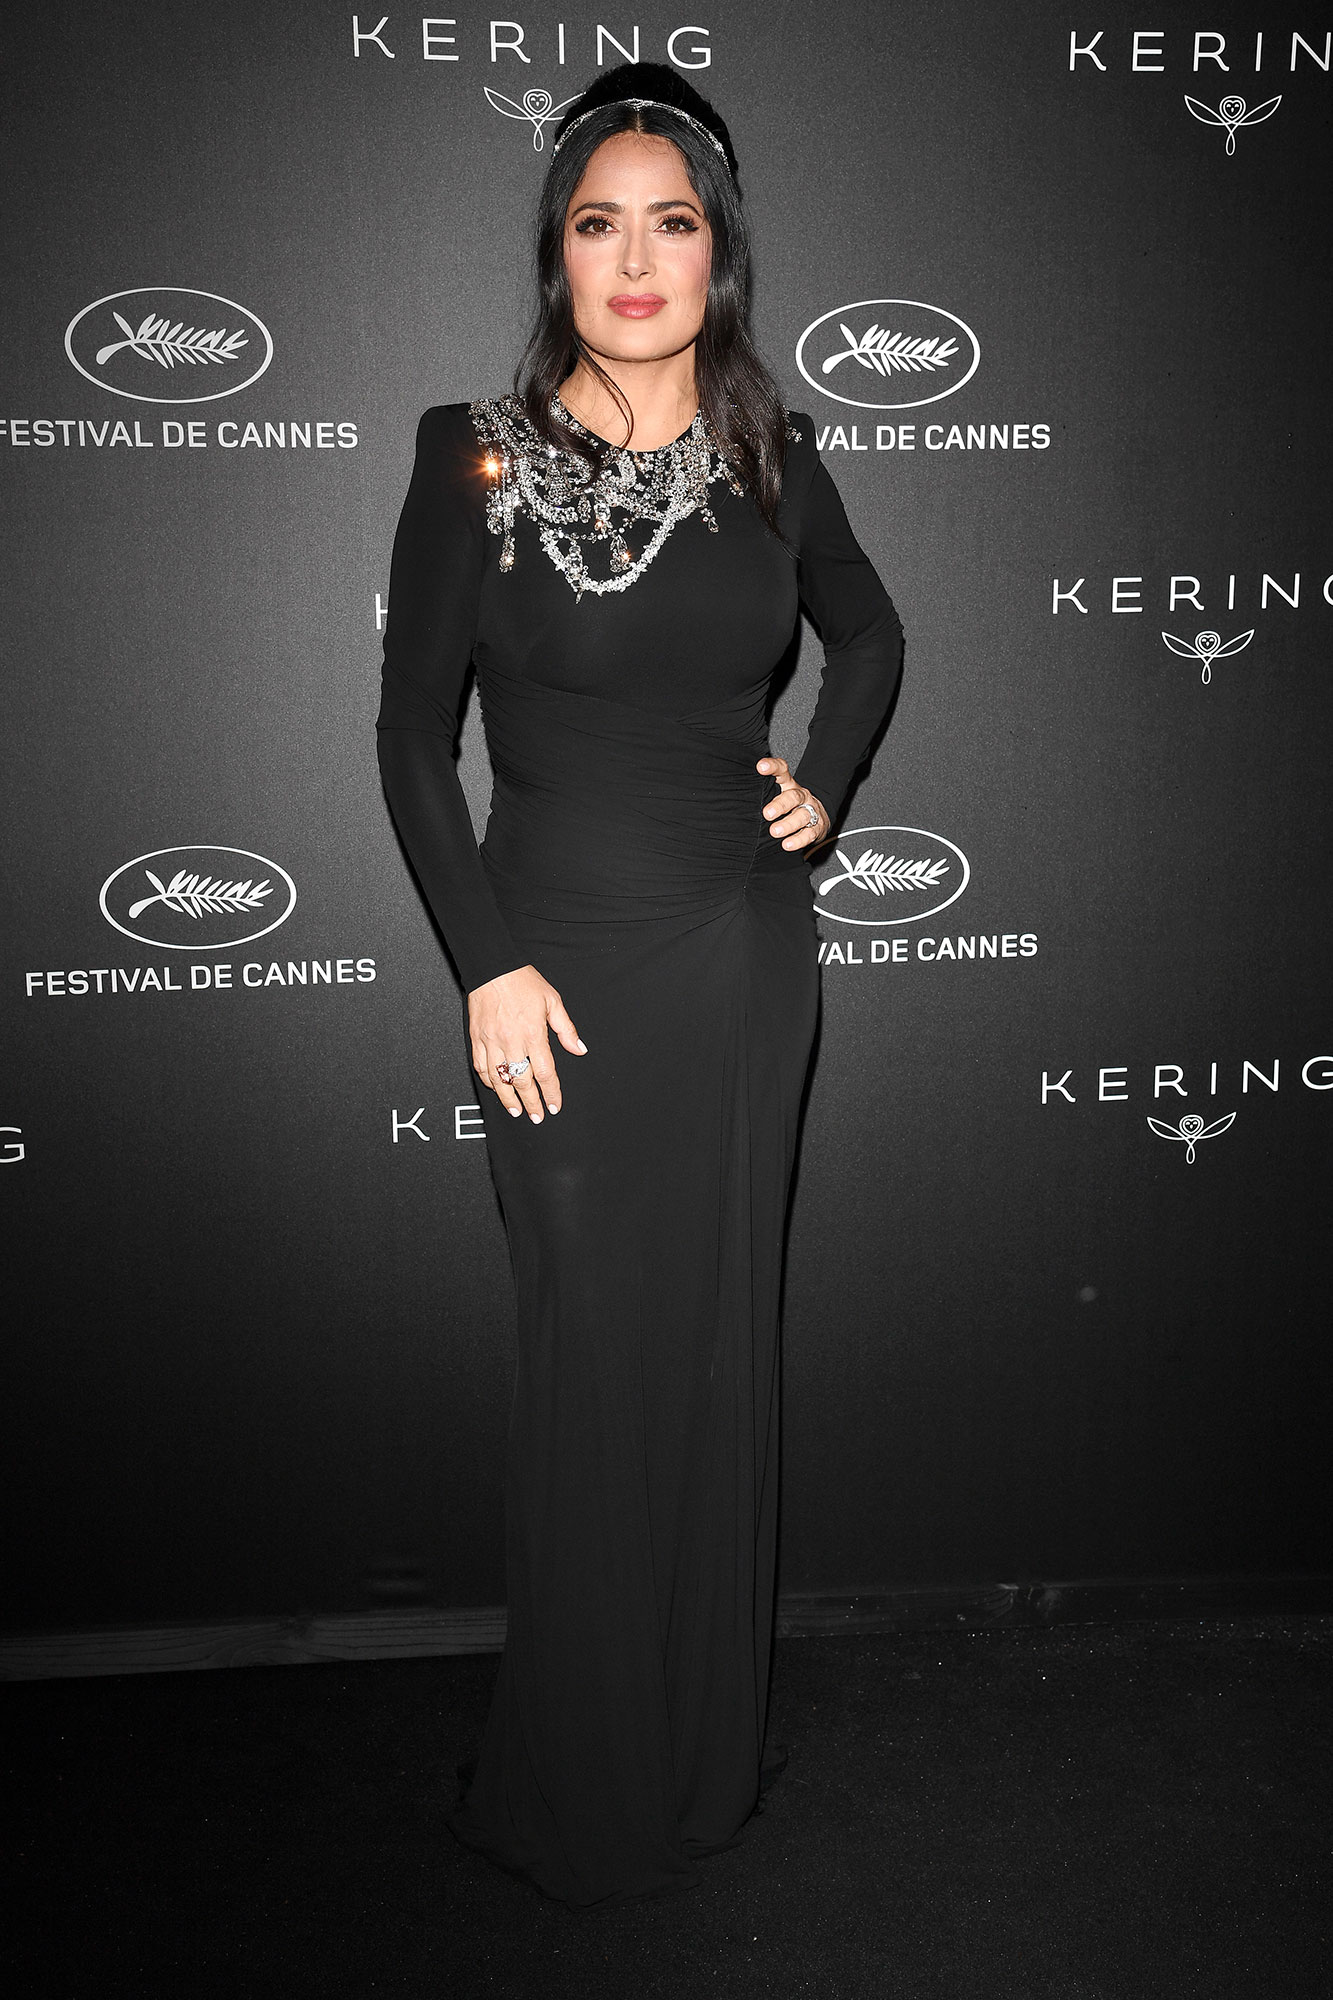 Stepping Out in Style at Cannes Film Festival - A crystal-embellished neckline gave the actress' curve-hugging LBD a sparkly spin at the Kering dinner on Sunday, May 19.